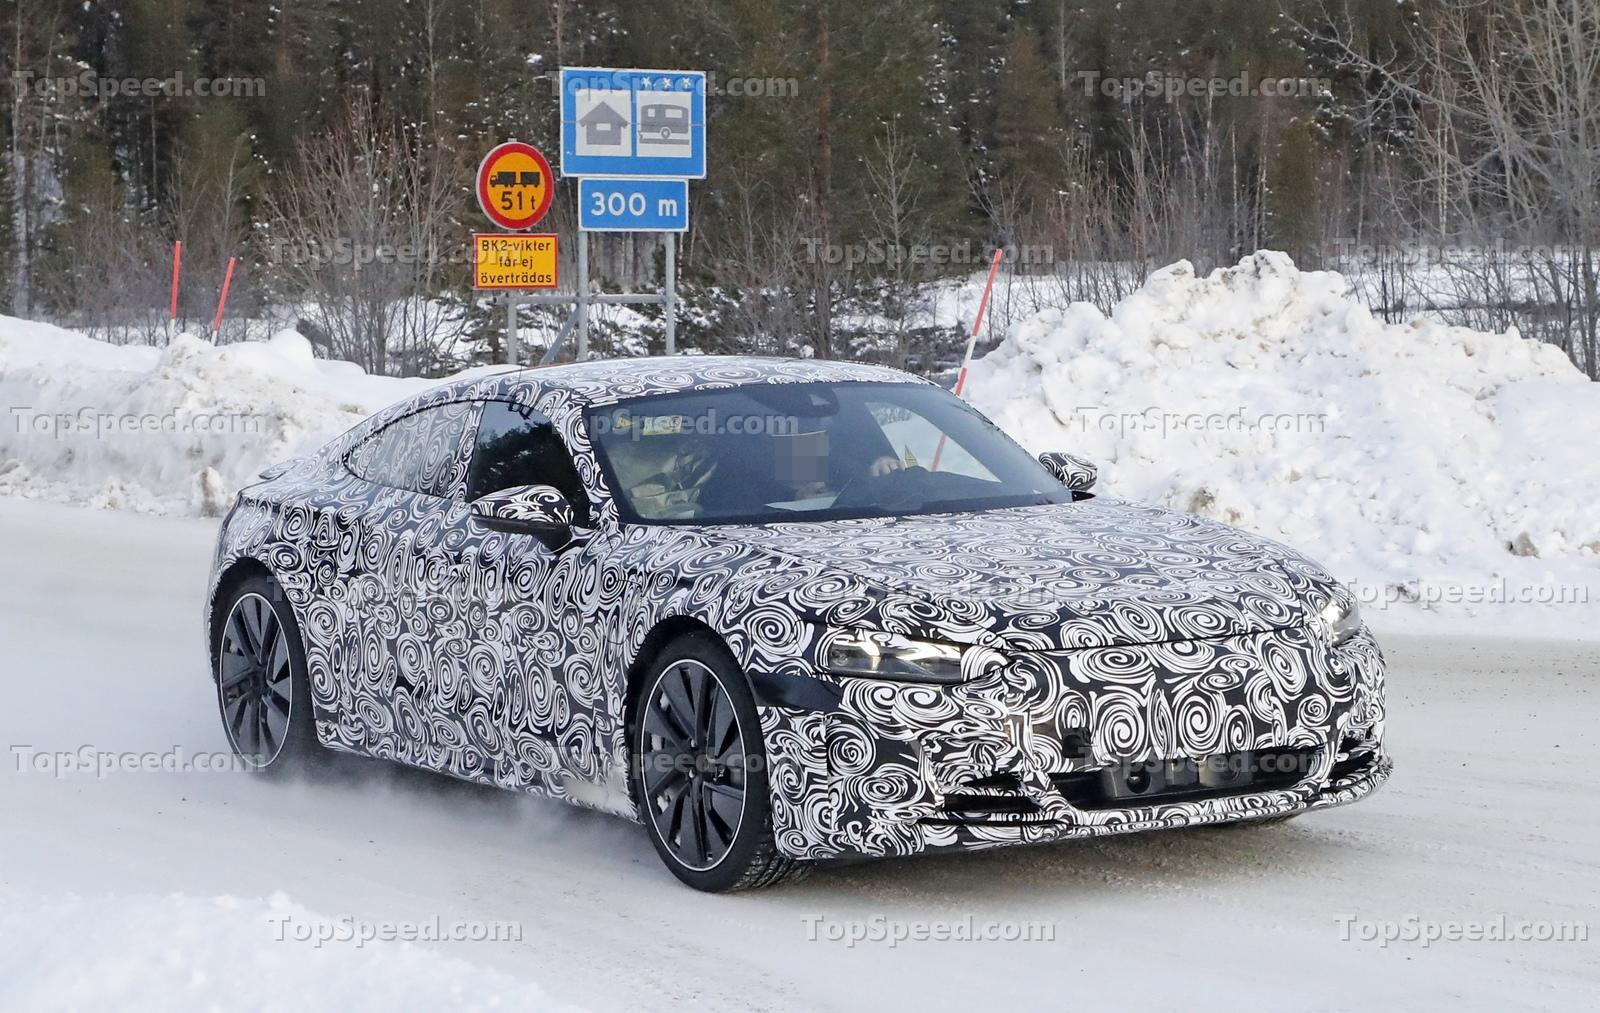 2021 audi e-tron gt speculative review and first spy shots